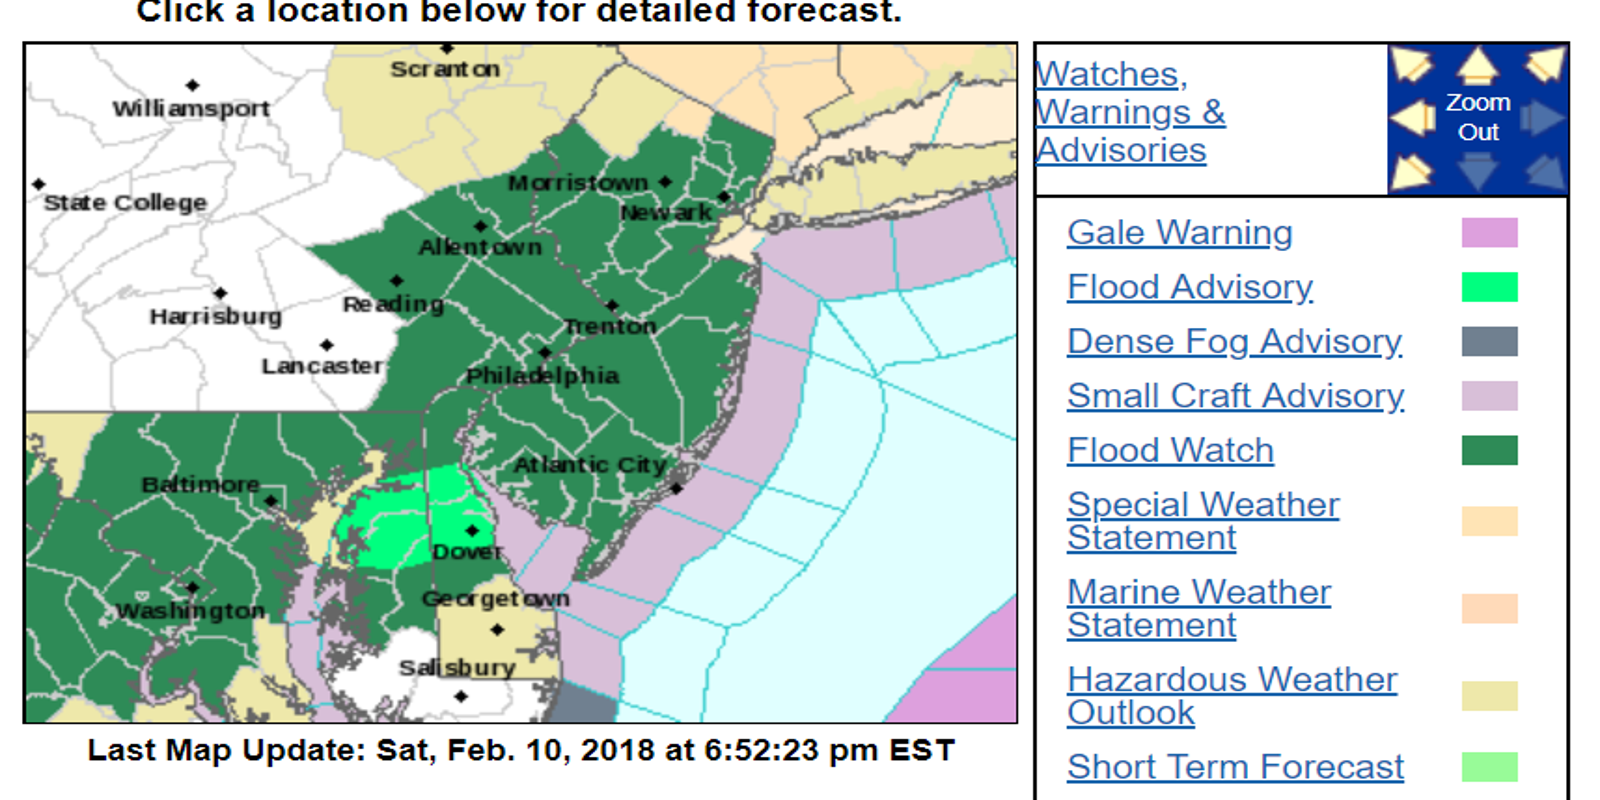 Jersey Shore Under Flood Watch For Rest Of Weekend